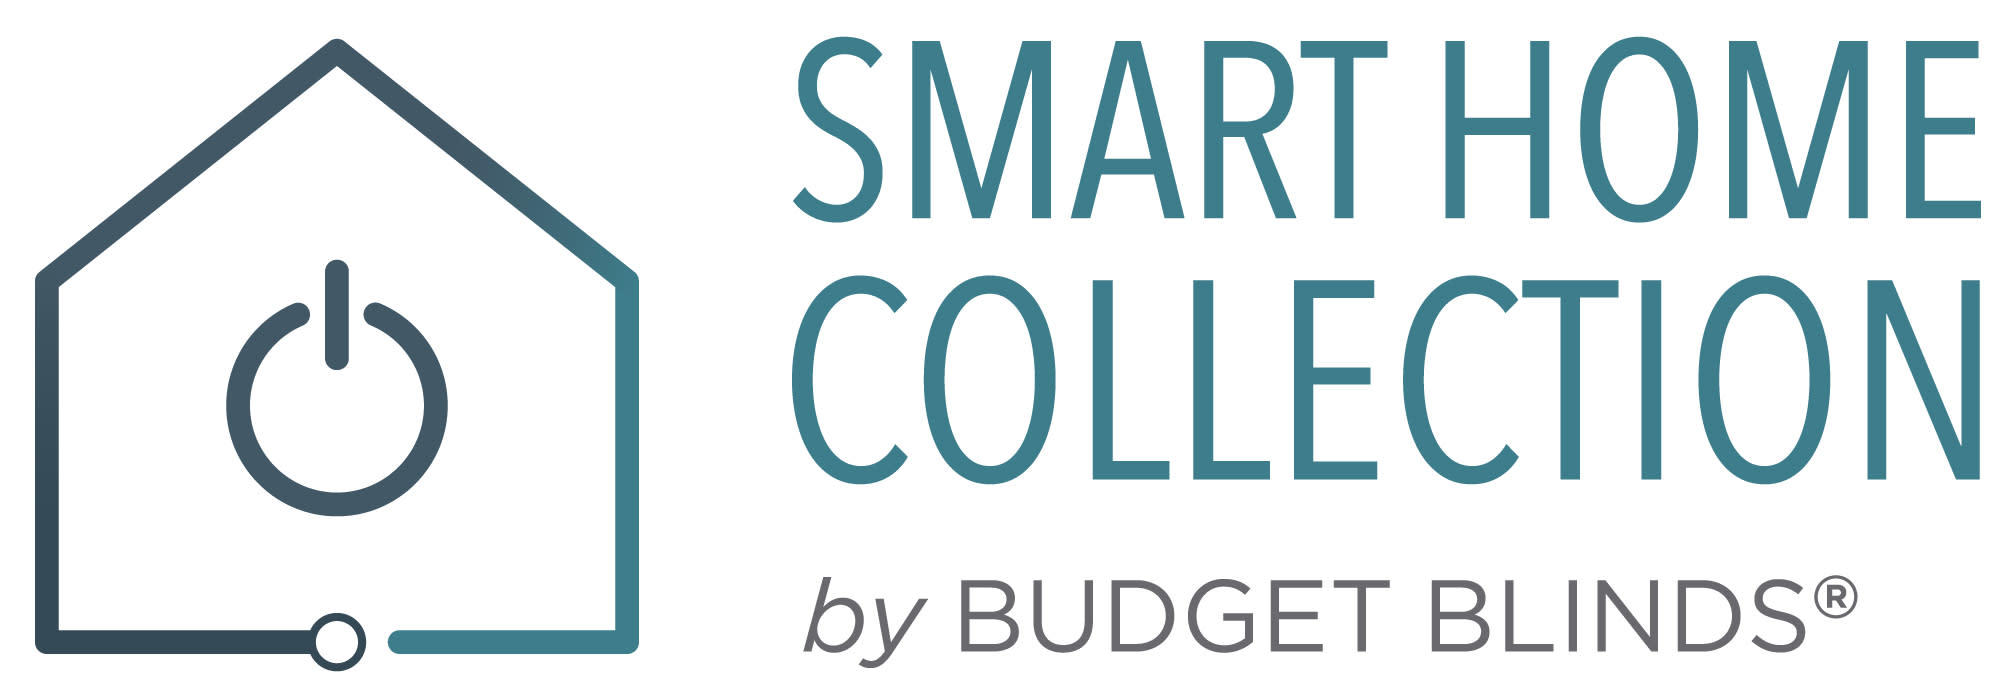 Smart Home Collection by Budget Blinds